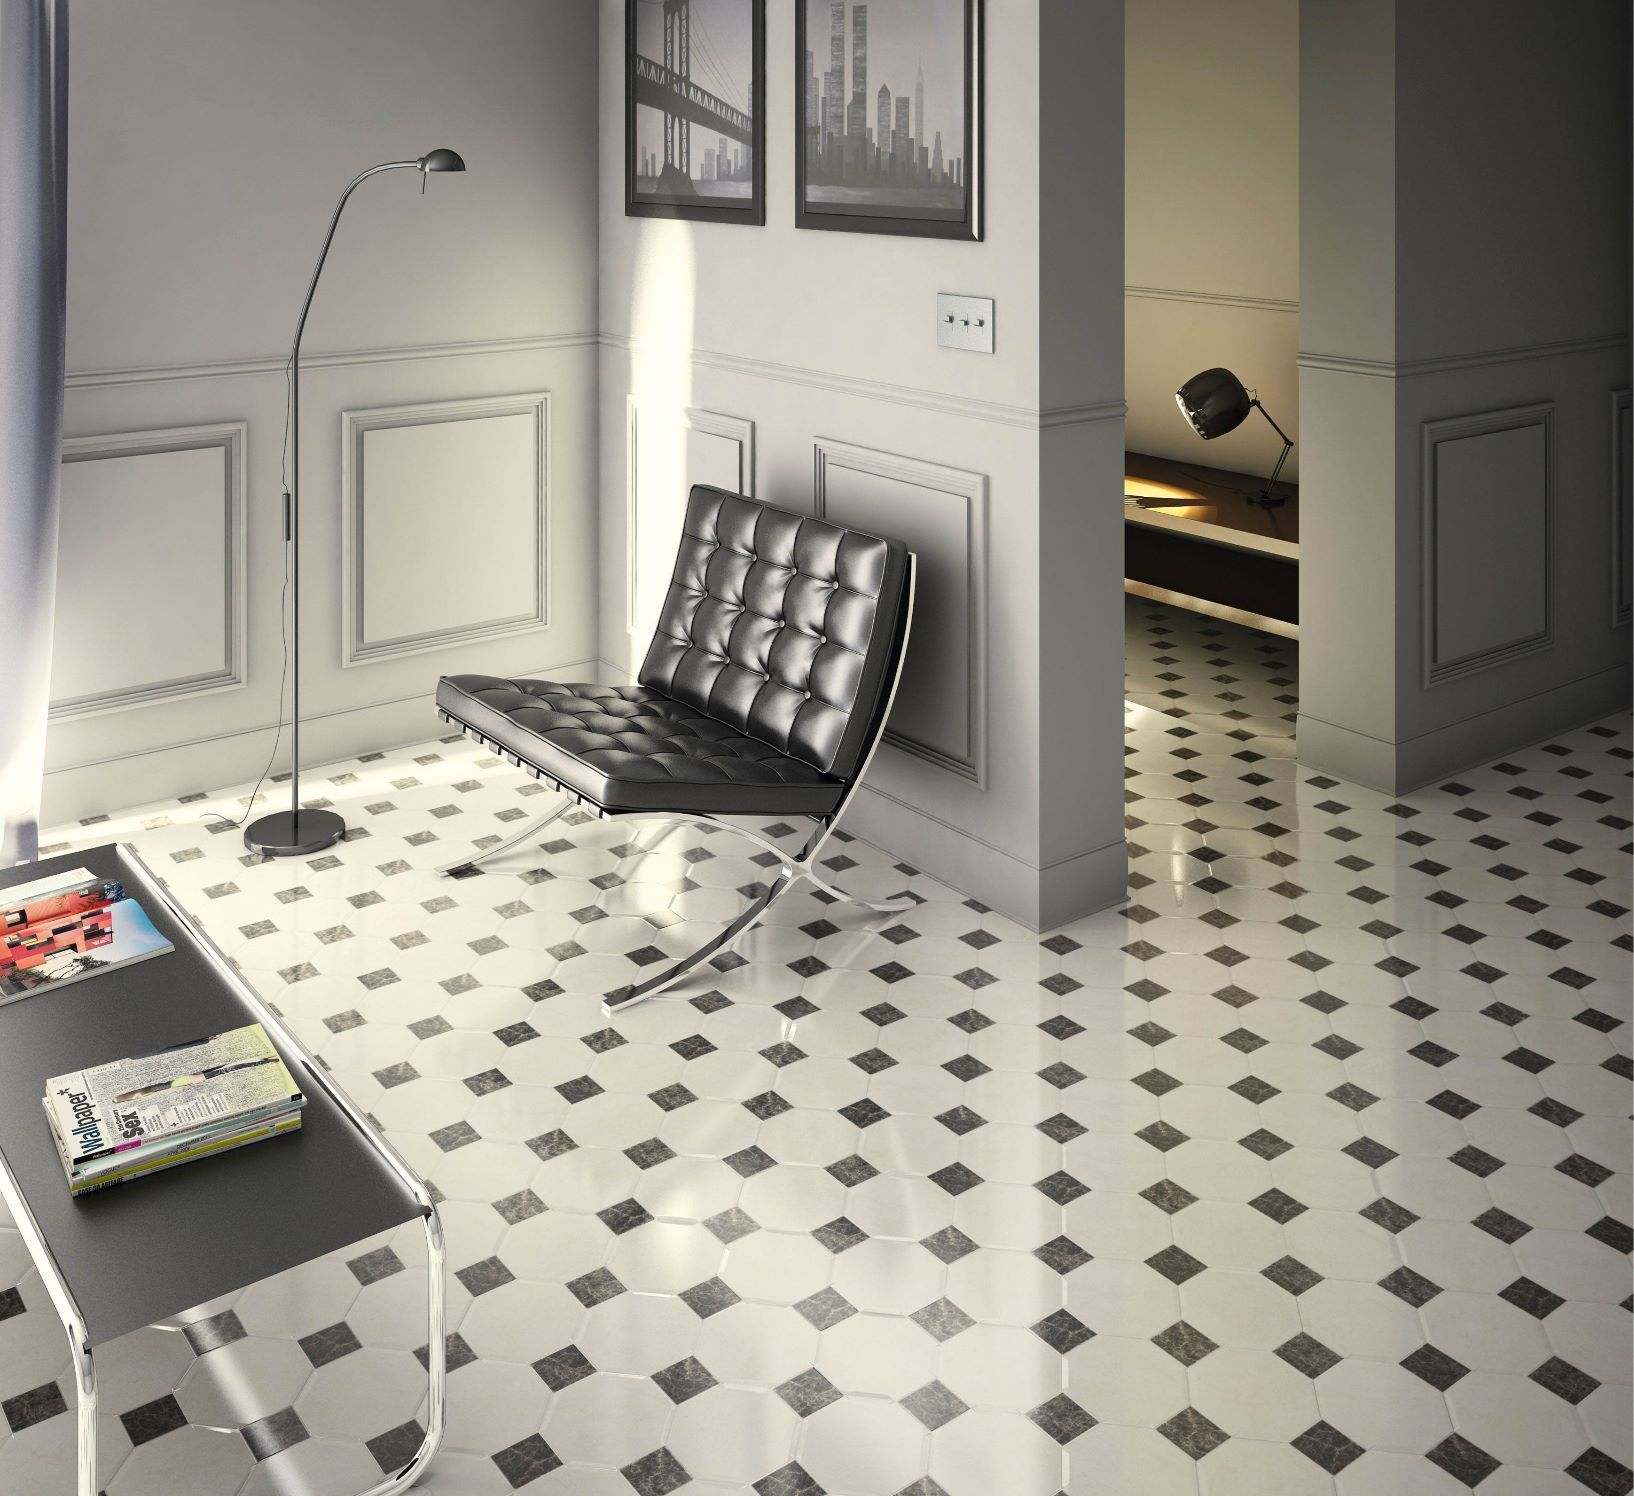 Antique ceramic floor tile discontinued and ceramic tile flooring at antique ceramic floor tile discontinued and ceramic tile flooring at lowes cermica pinterest ceramic tile floors ceramic floor tiles and tile dailygadgetfo Image collections